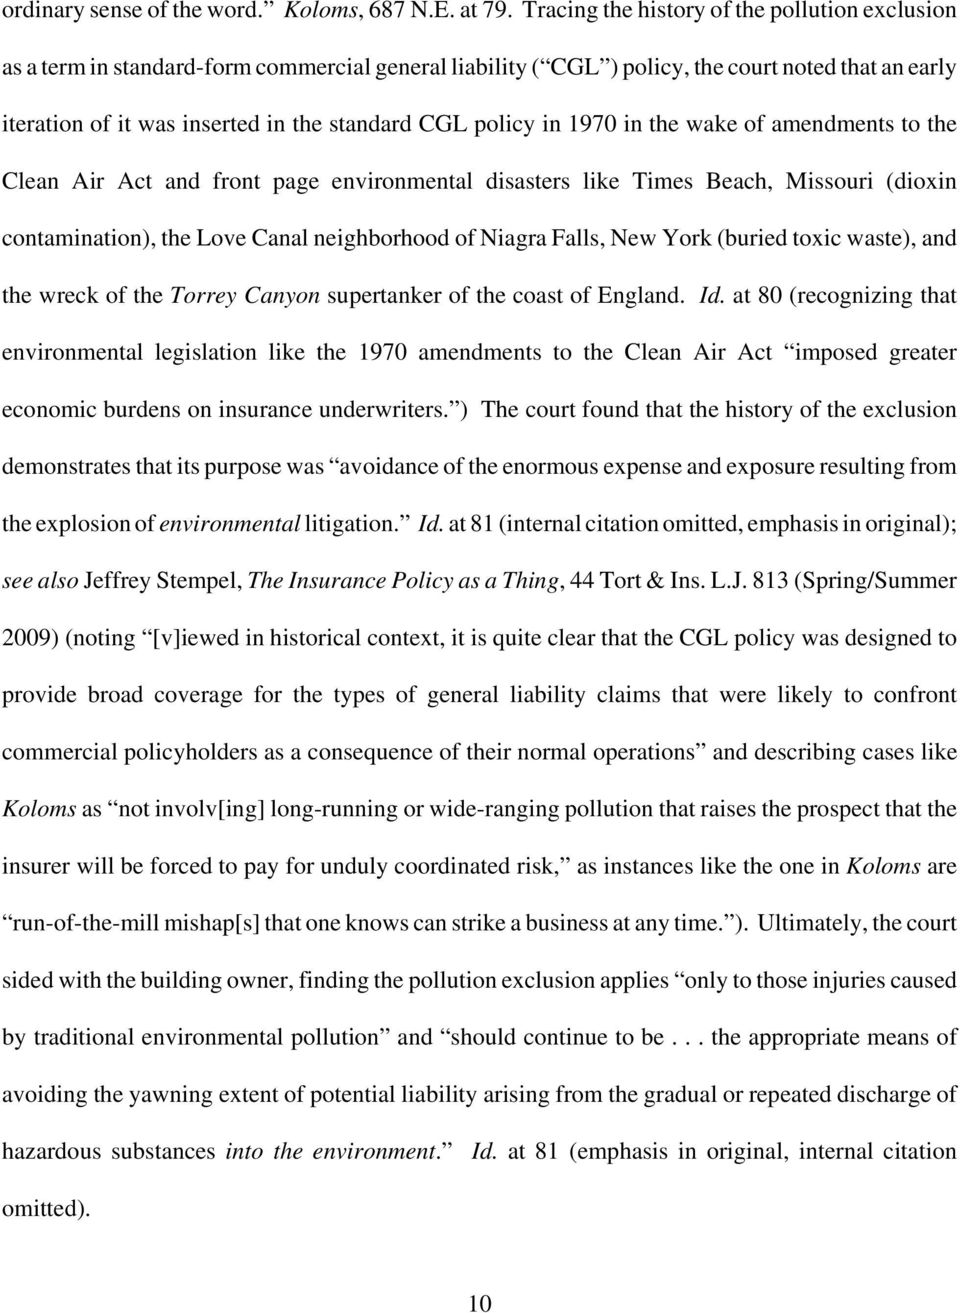 policy in 1970 in the wake of amendments to the Clean Air Act and front page environmental disasters like Times Beach, Missouri (dioxin contamination, the Love Canal neighborhood of Niagra Falls, New